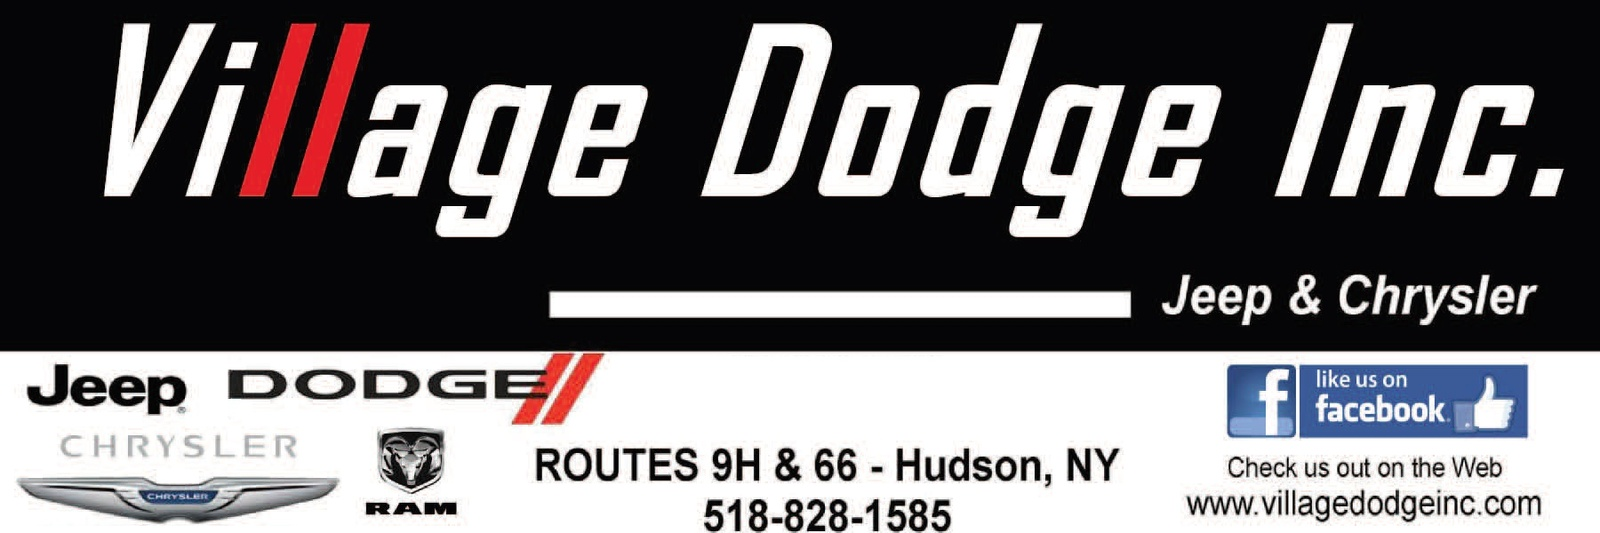 Dodge Dealers Albany Ny >> Village Dodge Inc - Hudson, NY: Read Consumer reviews, Browse Used and New Cars for Sale